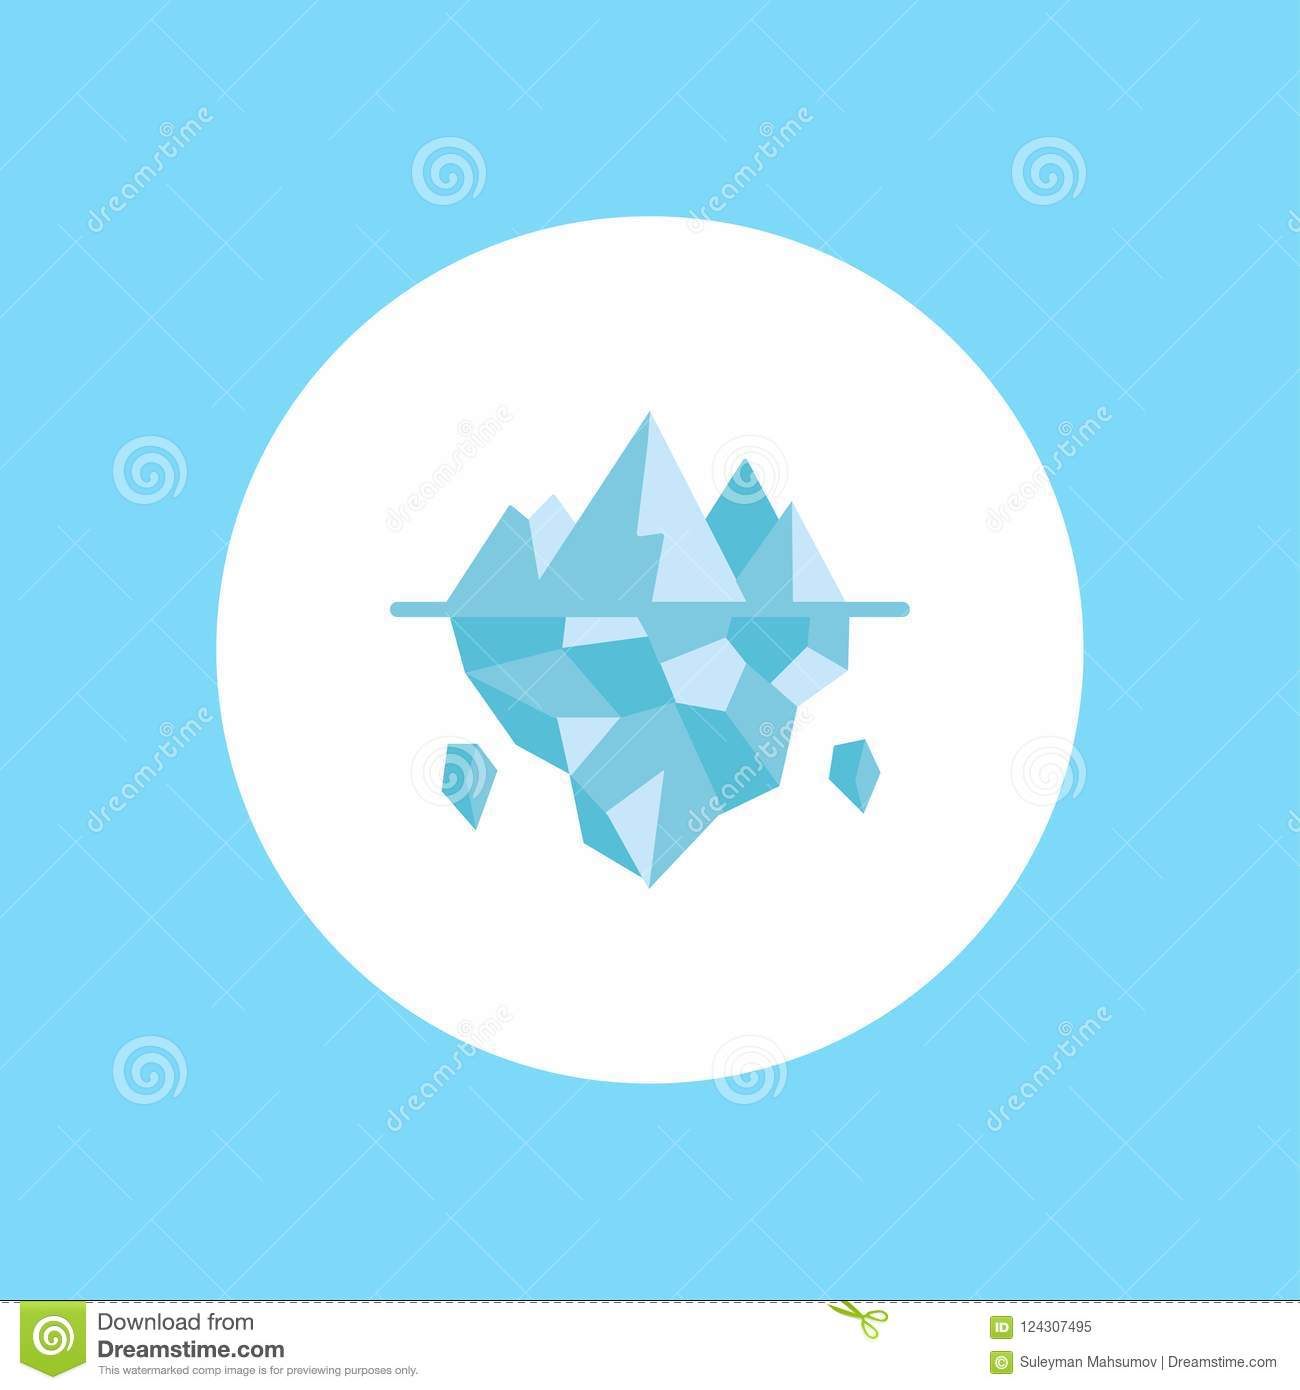 ice vector icon sign symbol stock vector illustration of melt christmas 124307495 dreamstime com